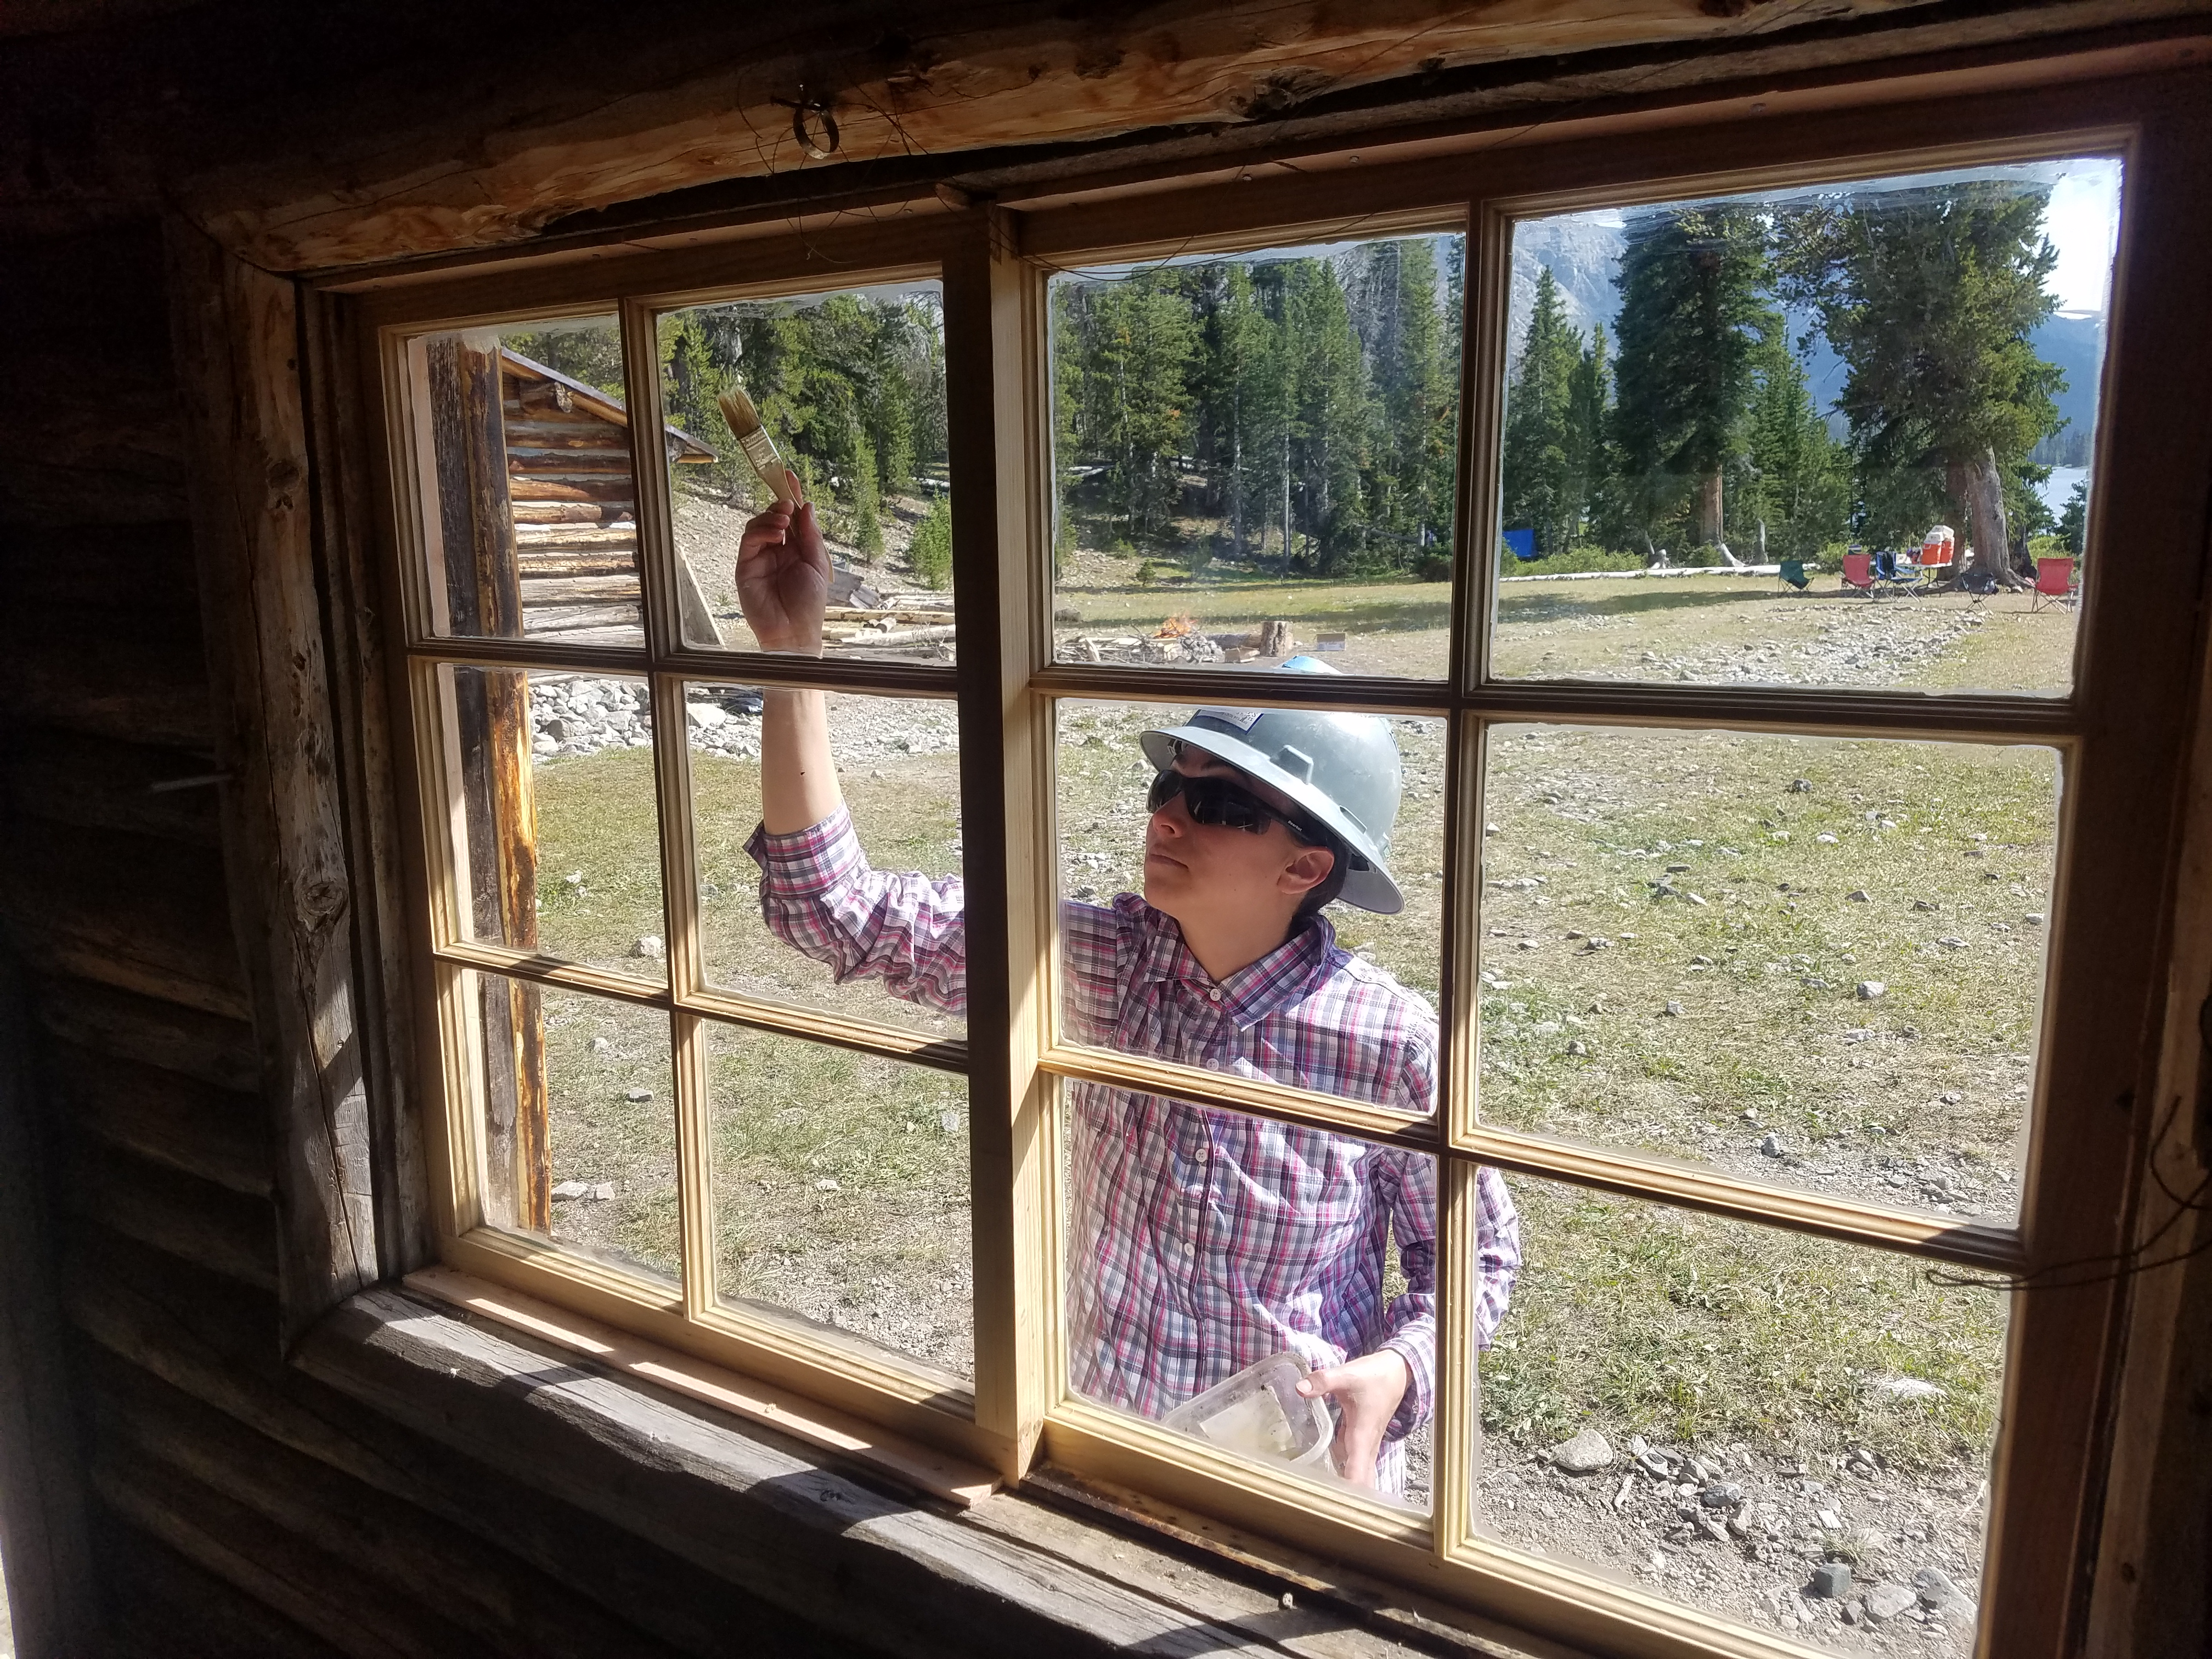 HistoriCorps crew and volunteers worked on repairing and replacing windows at Simpson Lake Lodge in summer 2017.